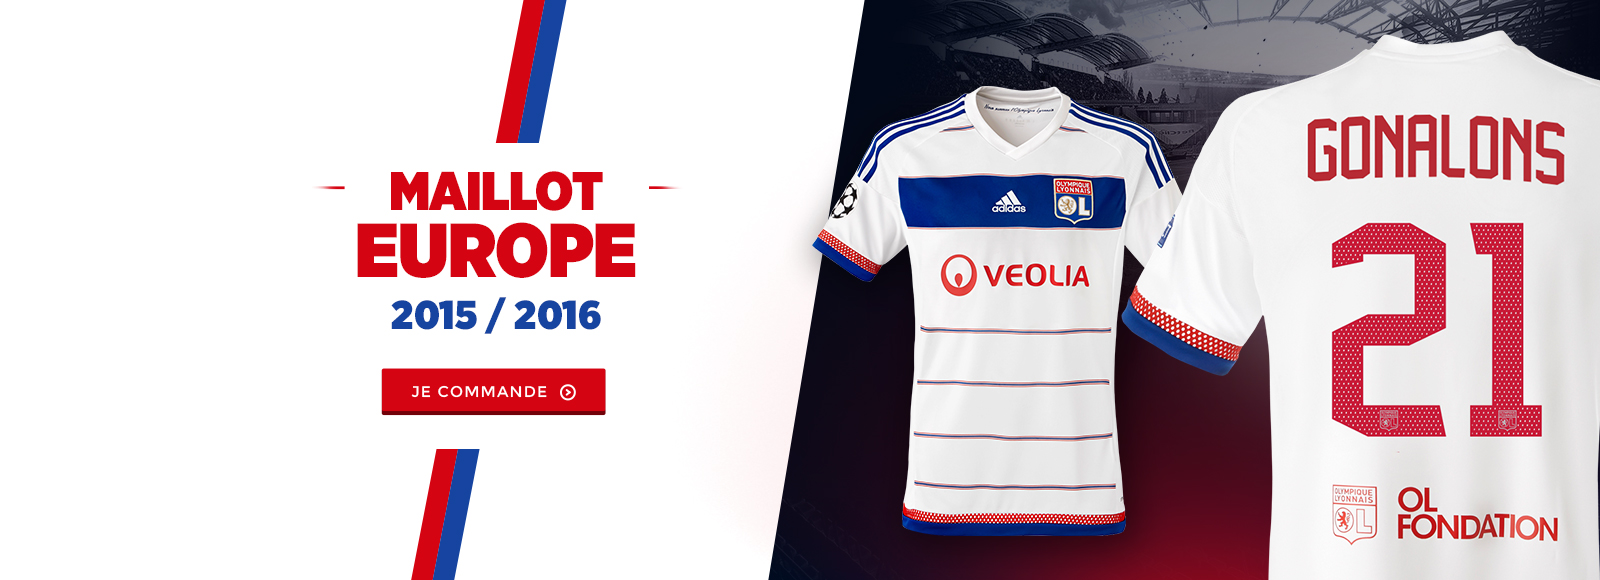 Maillot europe 2015//2016